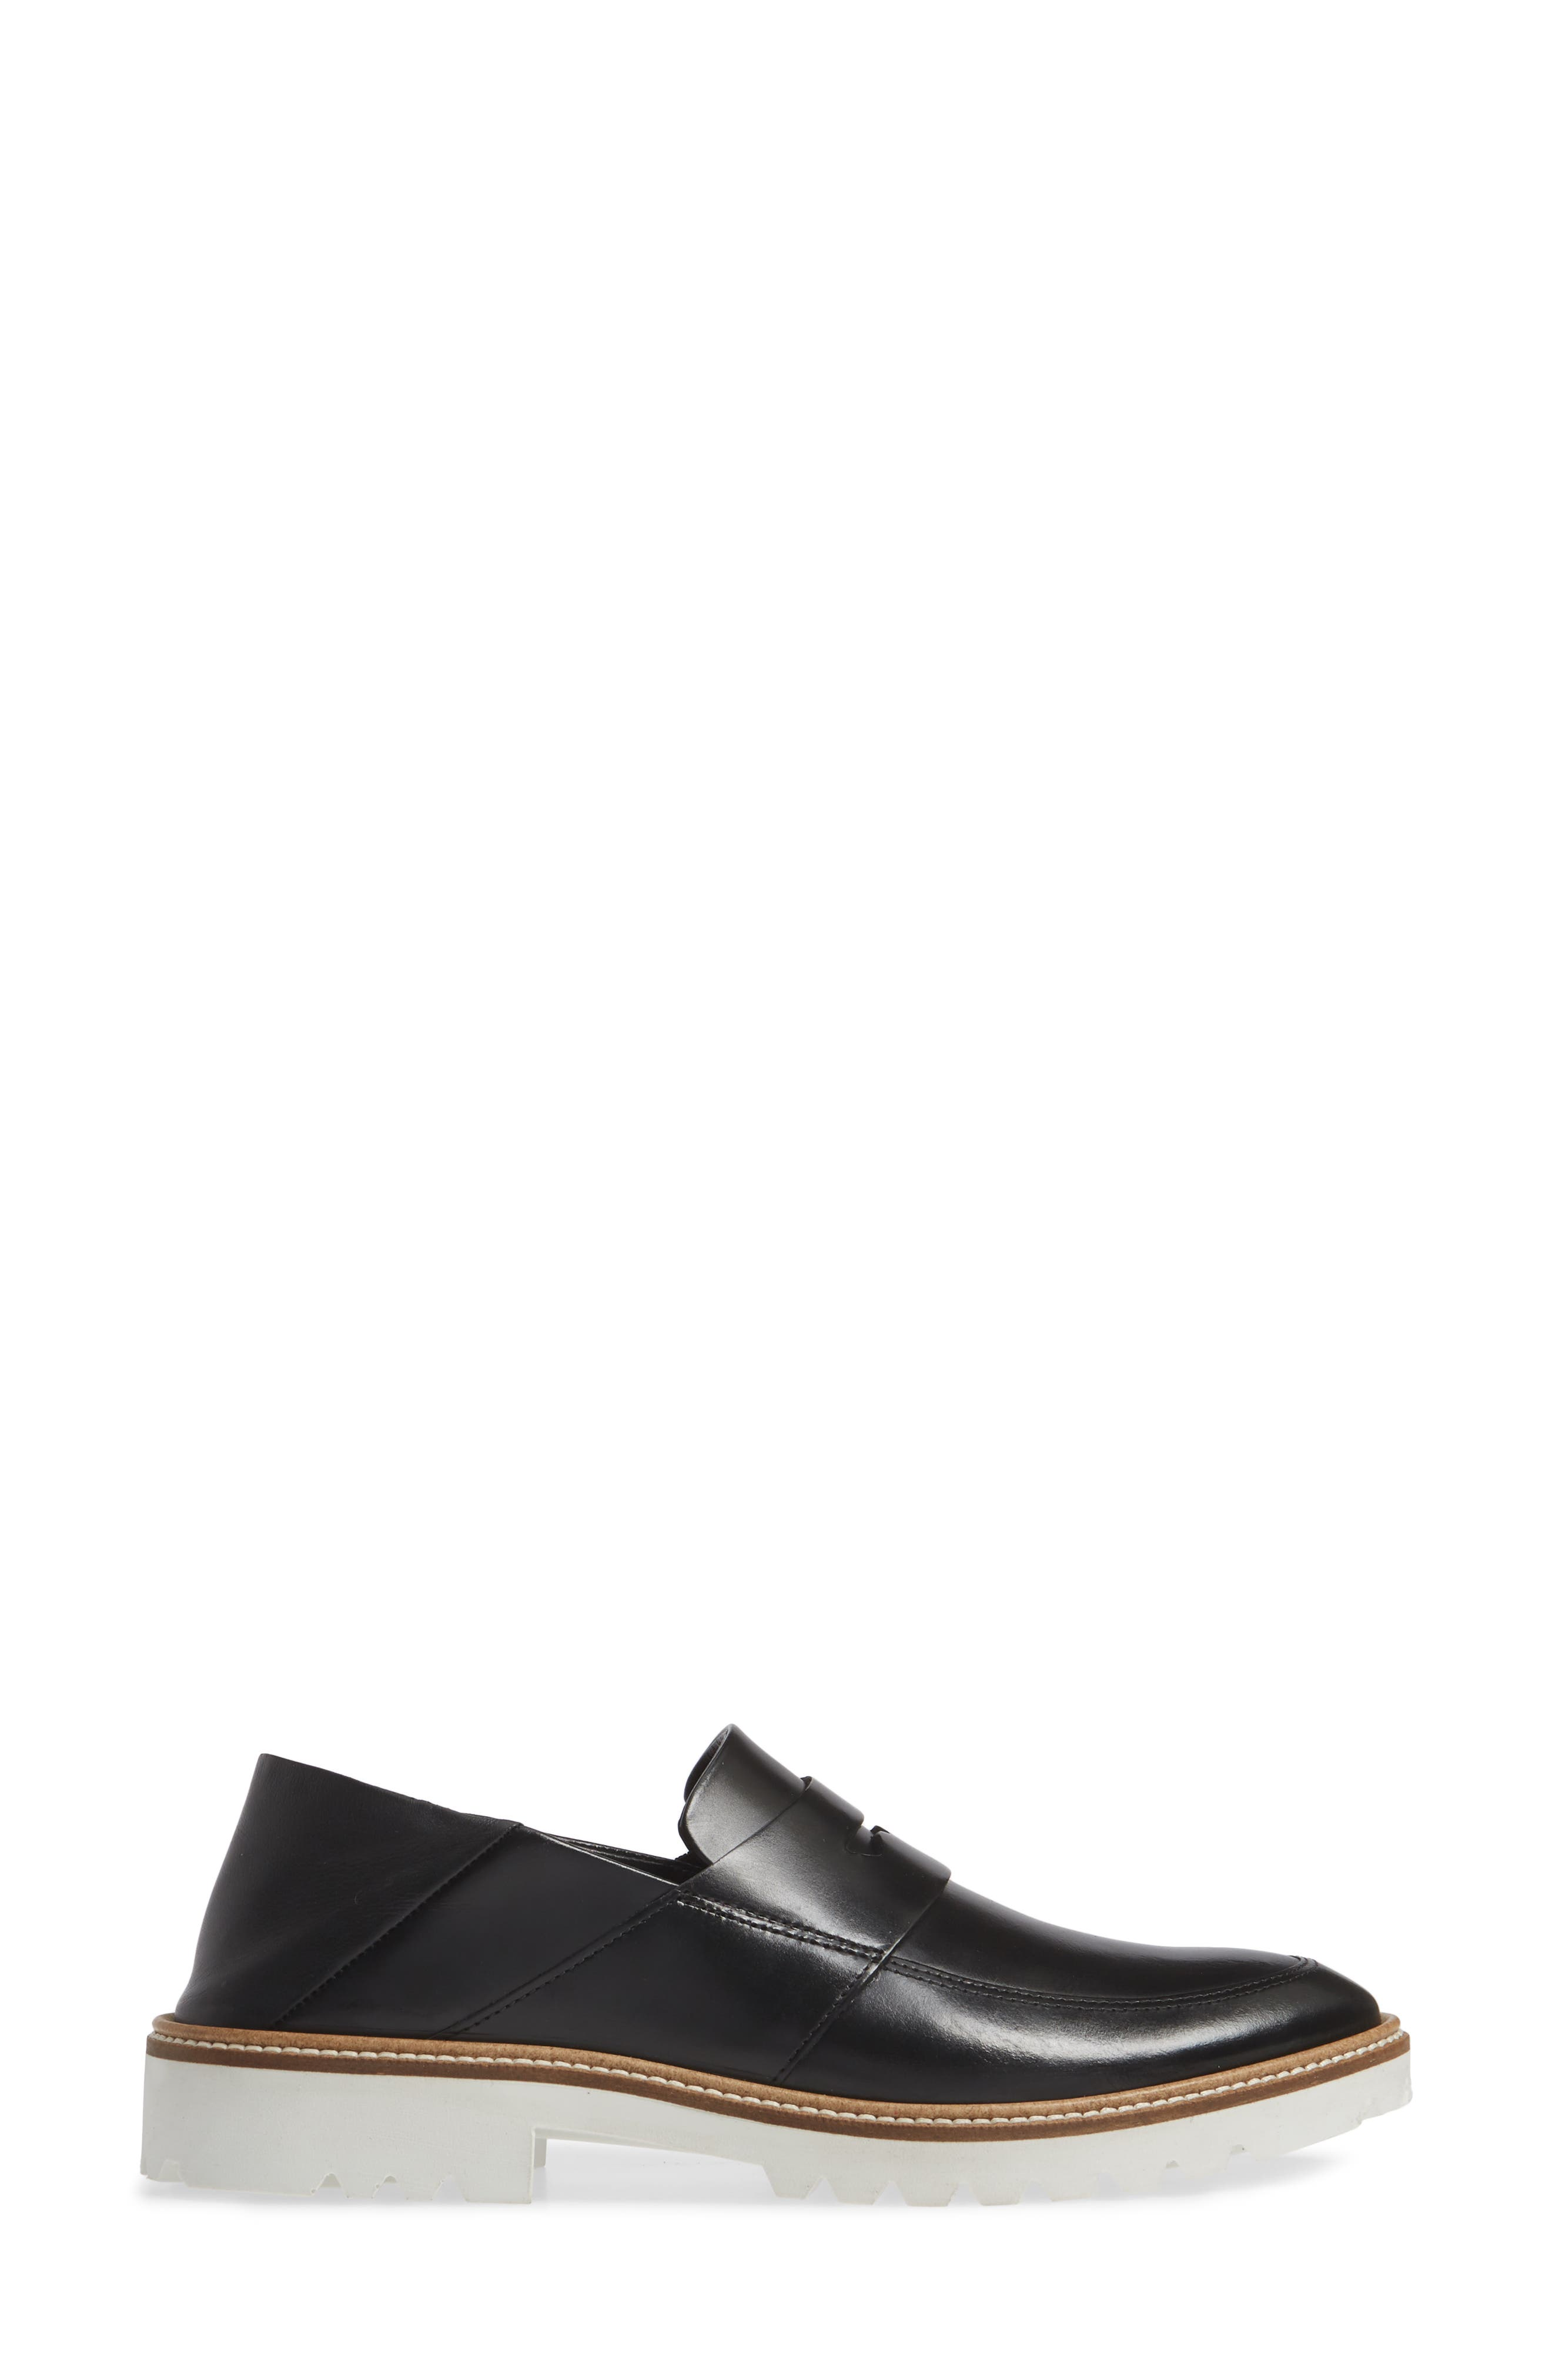 Incise Tailored Convertible Loafer,                             Alternate thumbnail 2, color,                             BLACK LEATHER